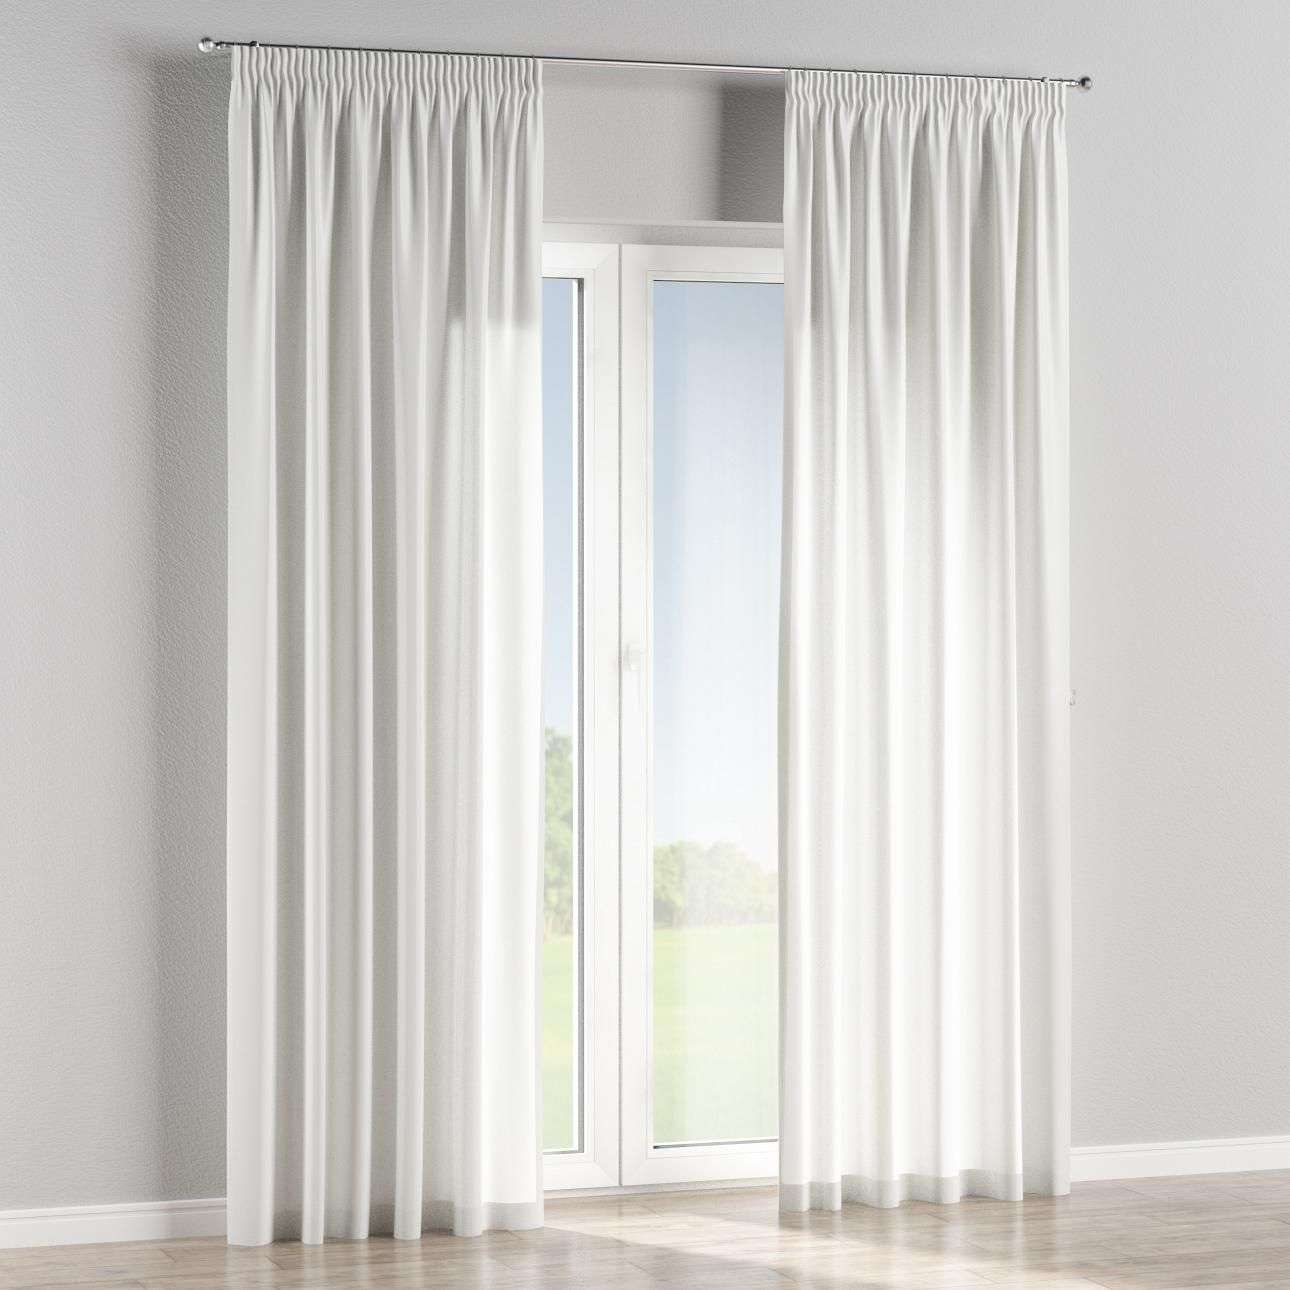 Pencil pleat curtains in collection Rustica, fabric: 140-59